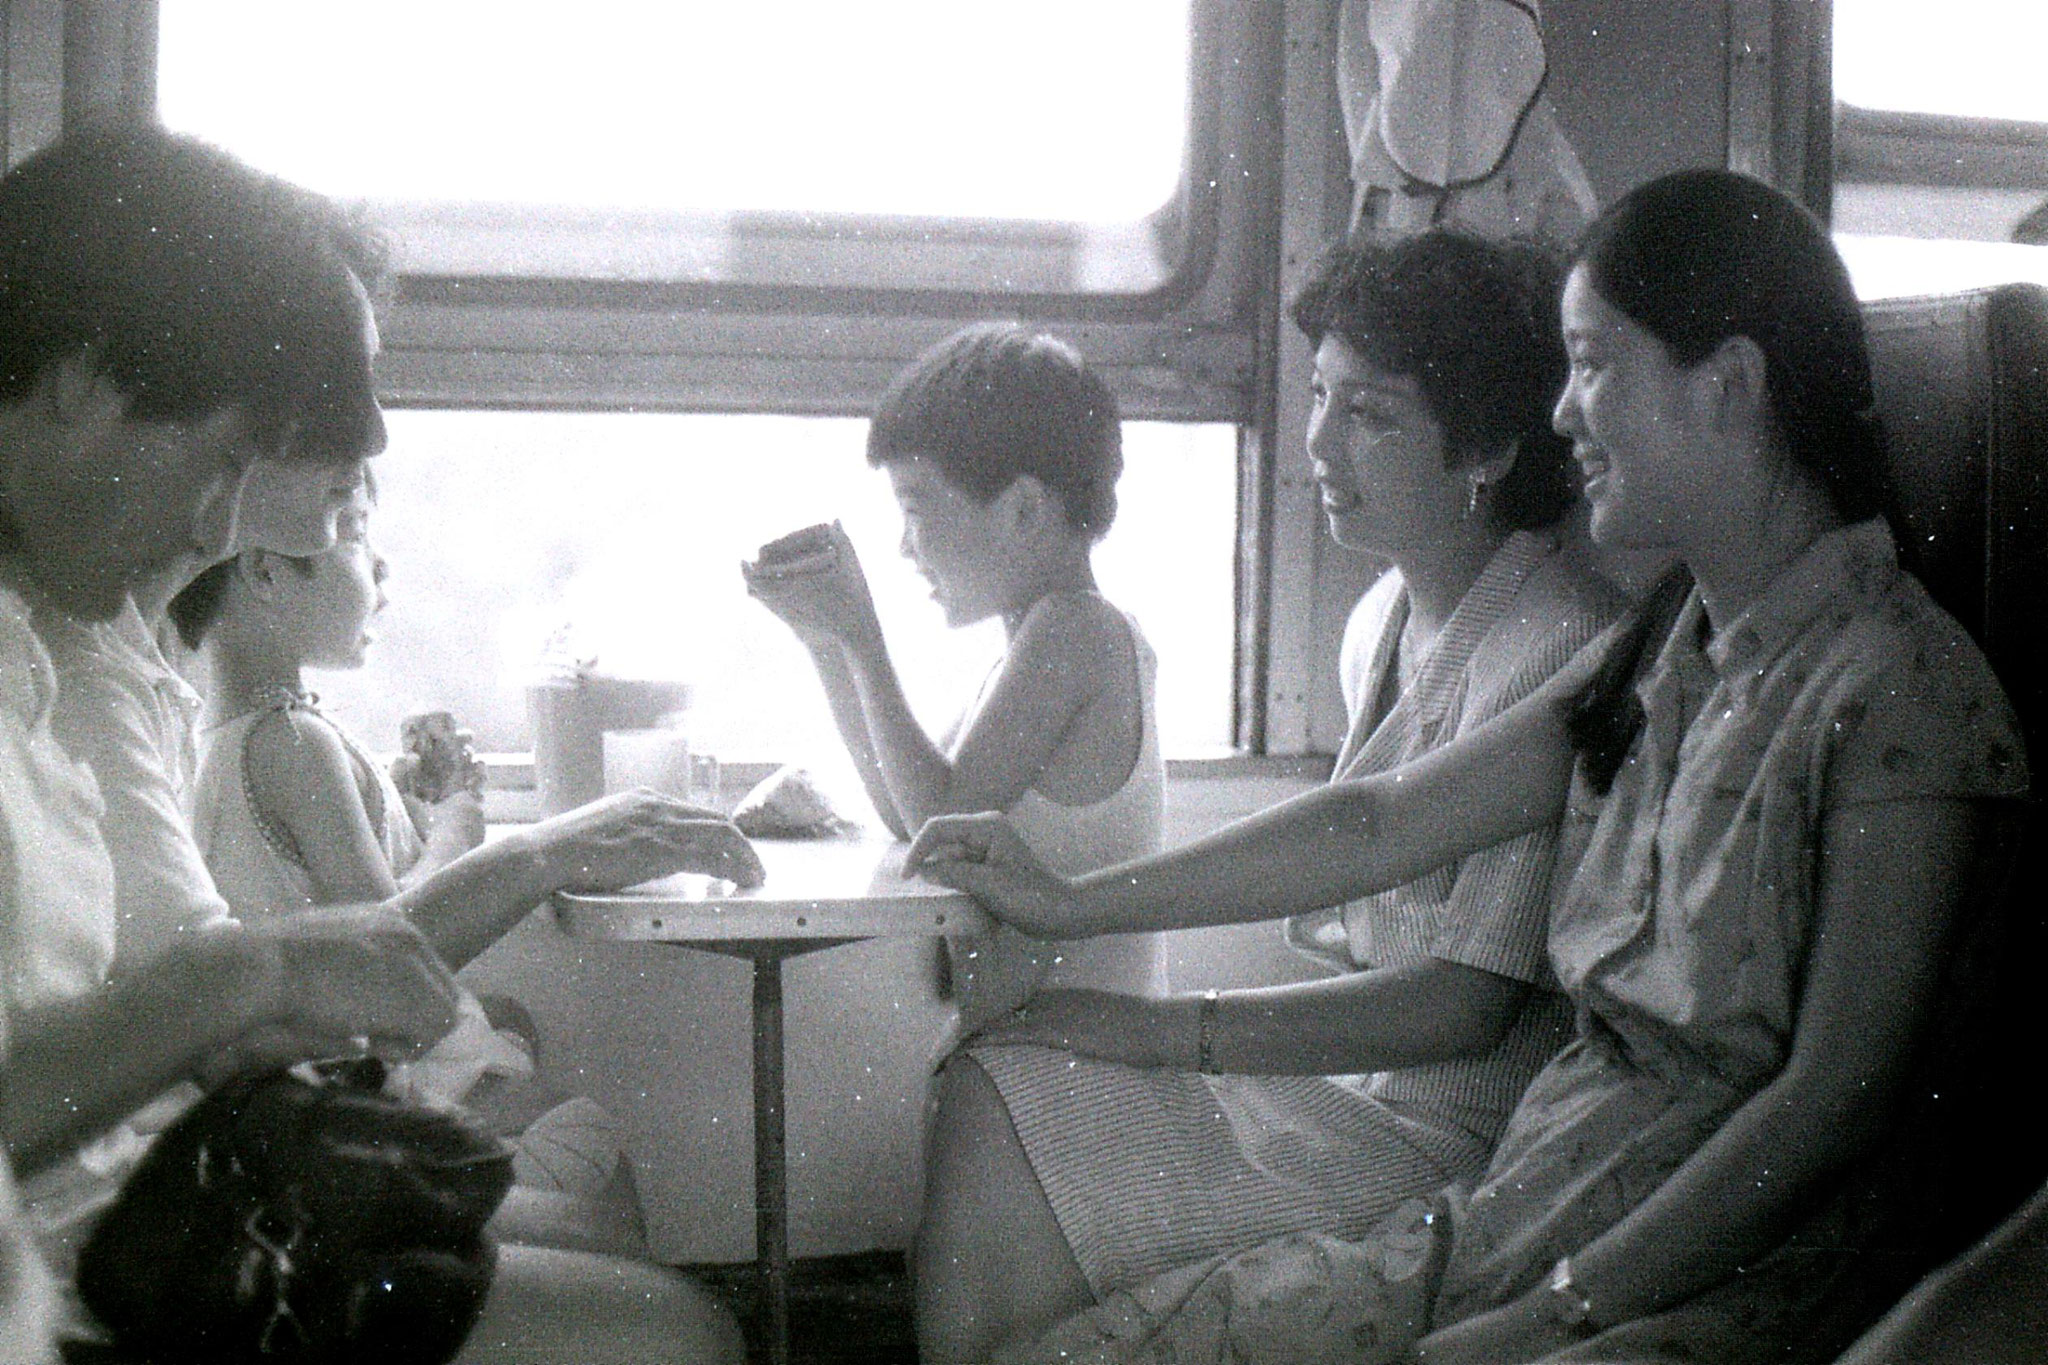 23/7/1989: 20: 2 families on train to Ningbo